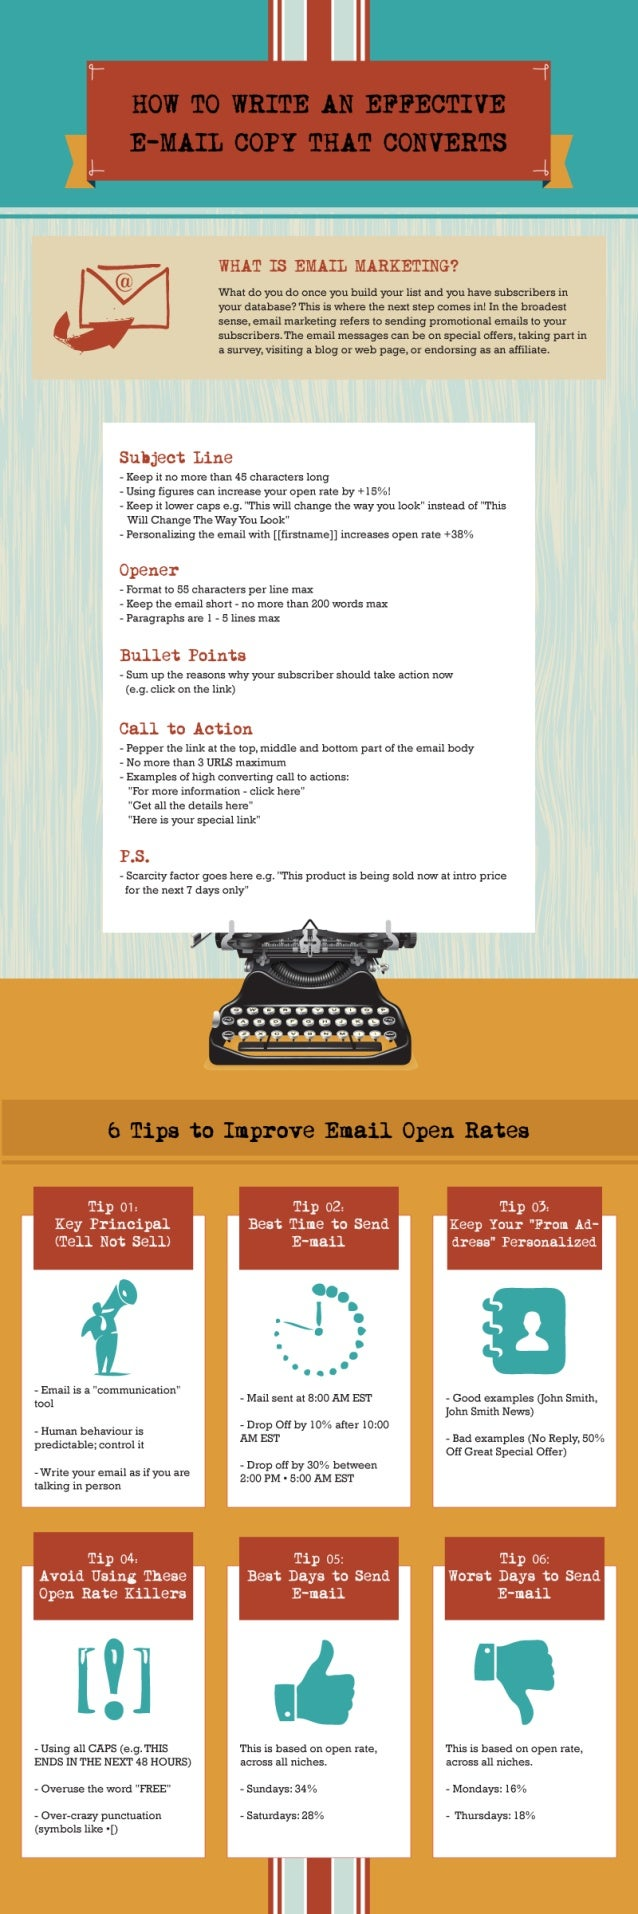 How to write an effective e-mail copy